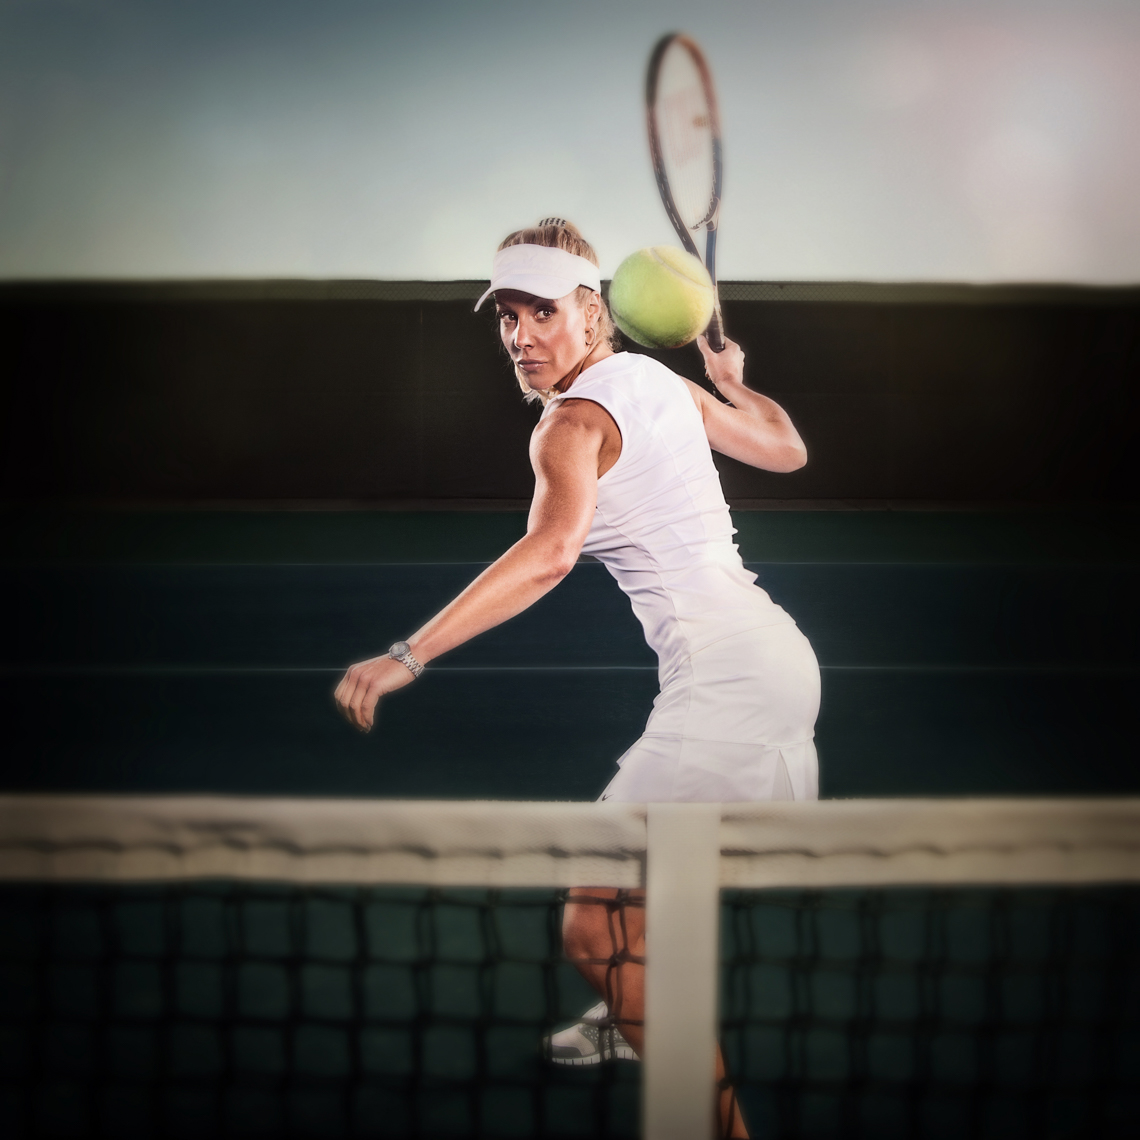 tennis-player-winds-up-for-forehand